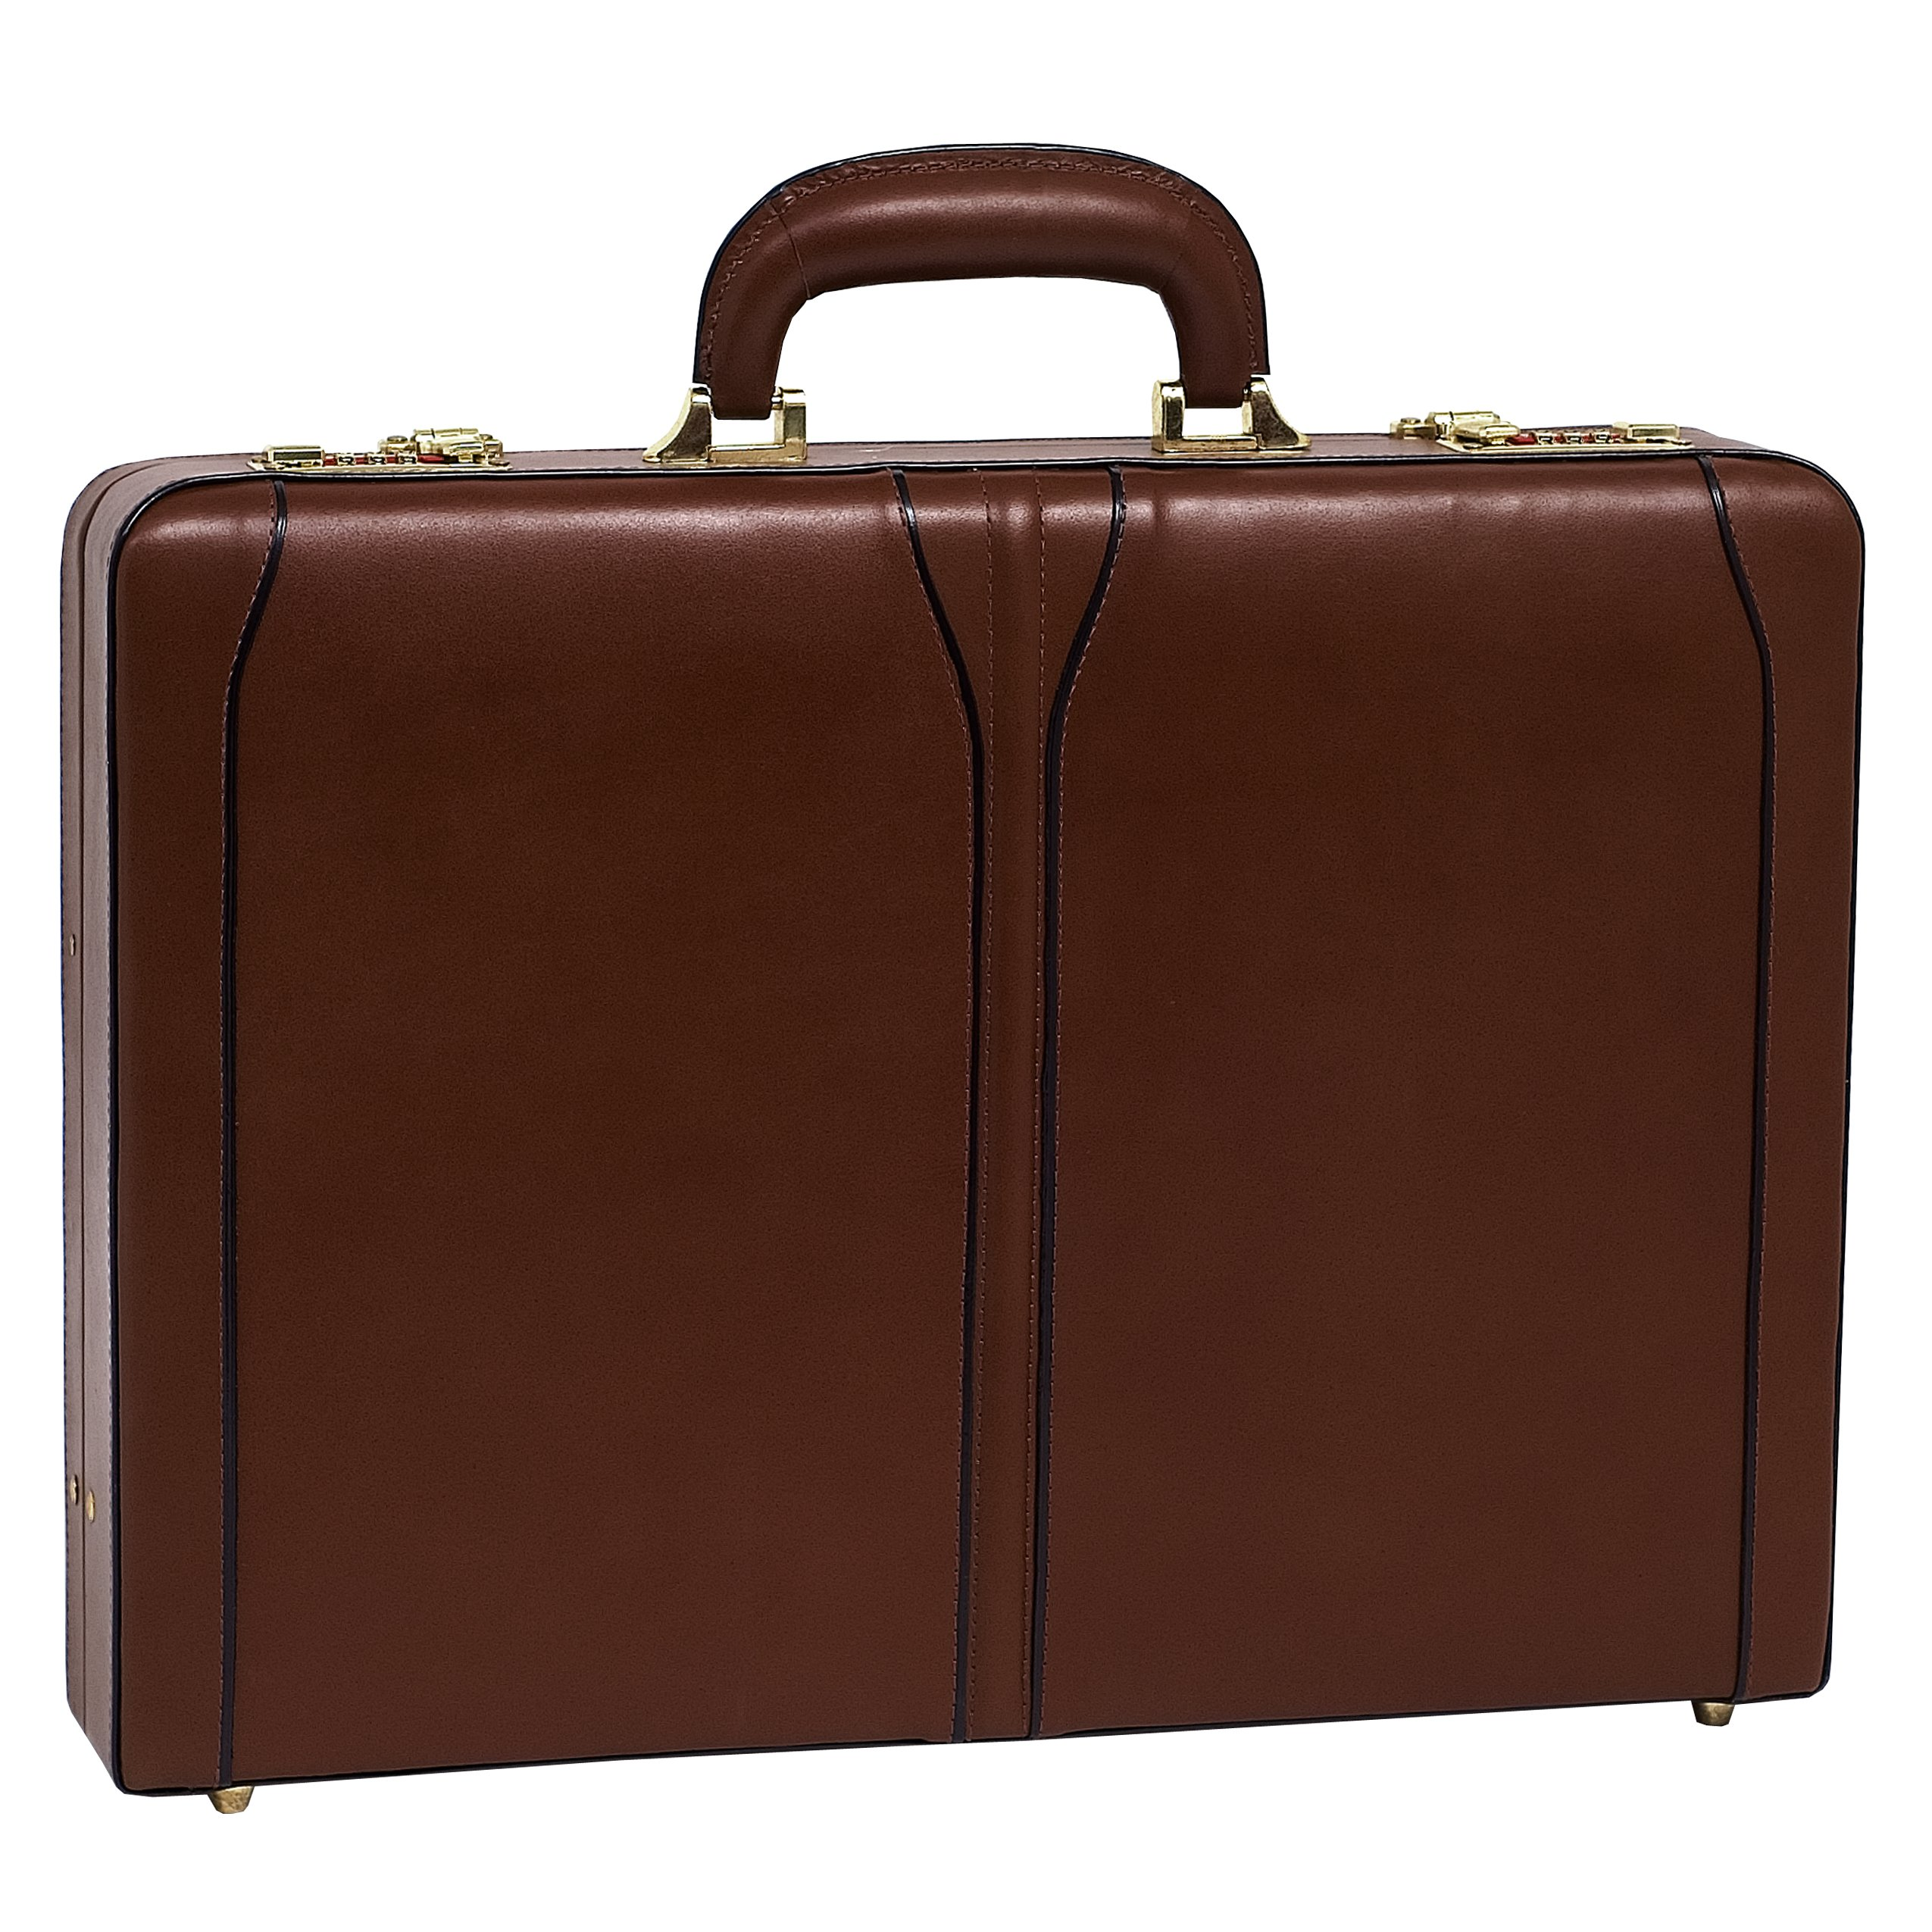 McKleinUSA Lawson [Personalized Initials Embossing] Leather 3.5'' Attache Briefcase in Brown by McKlein